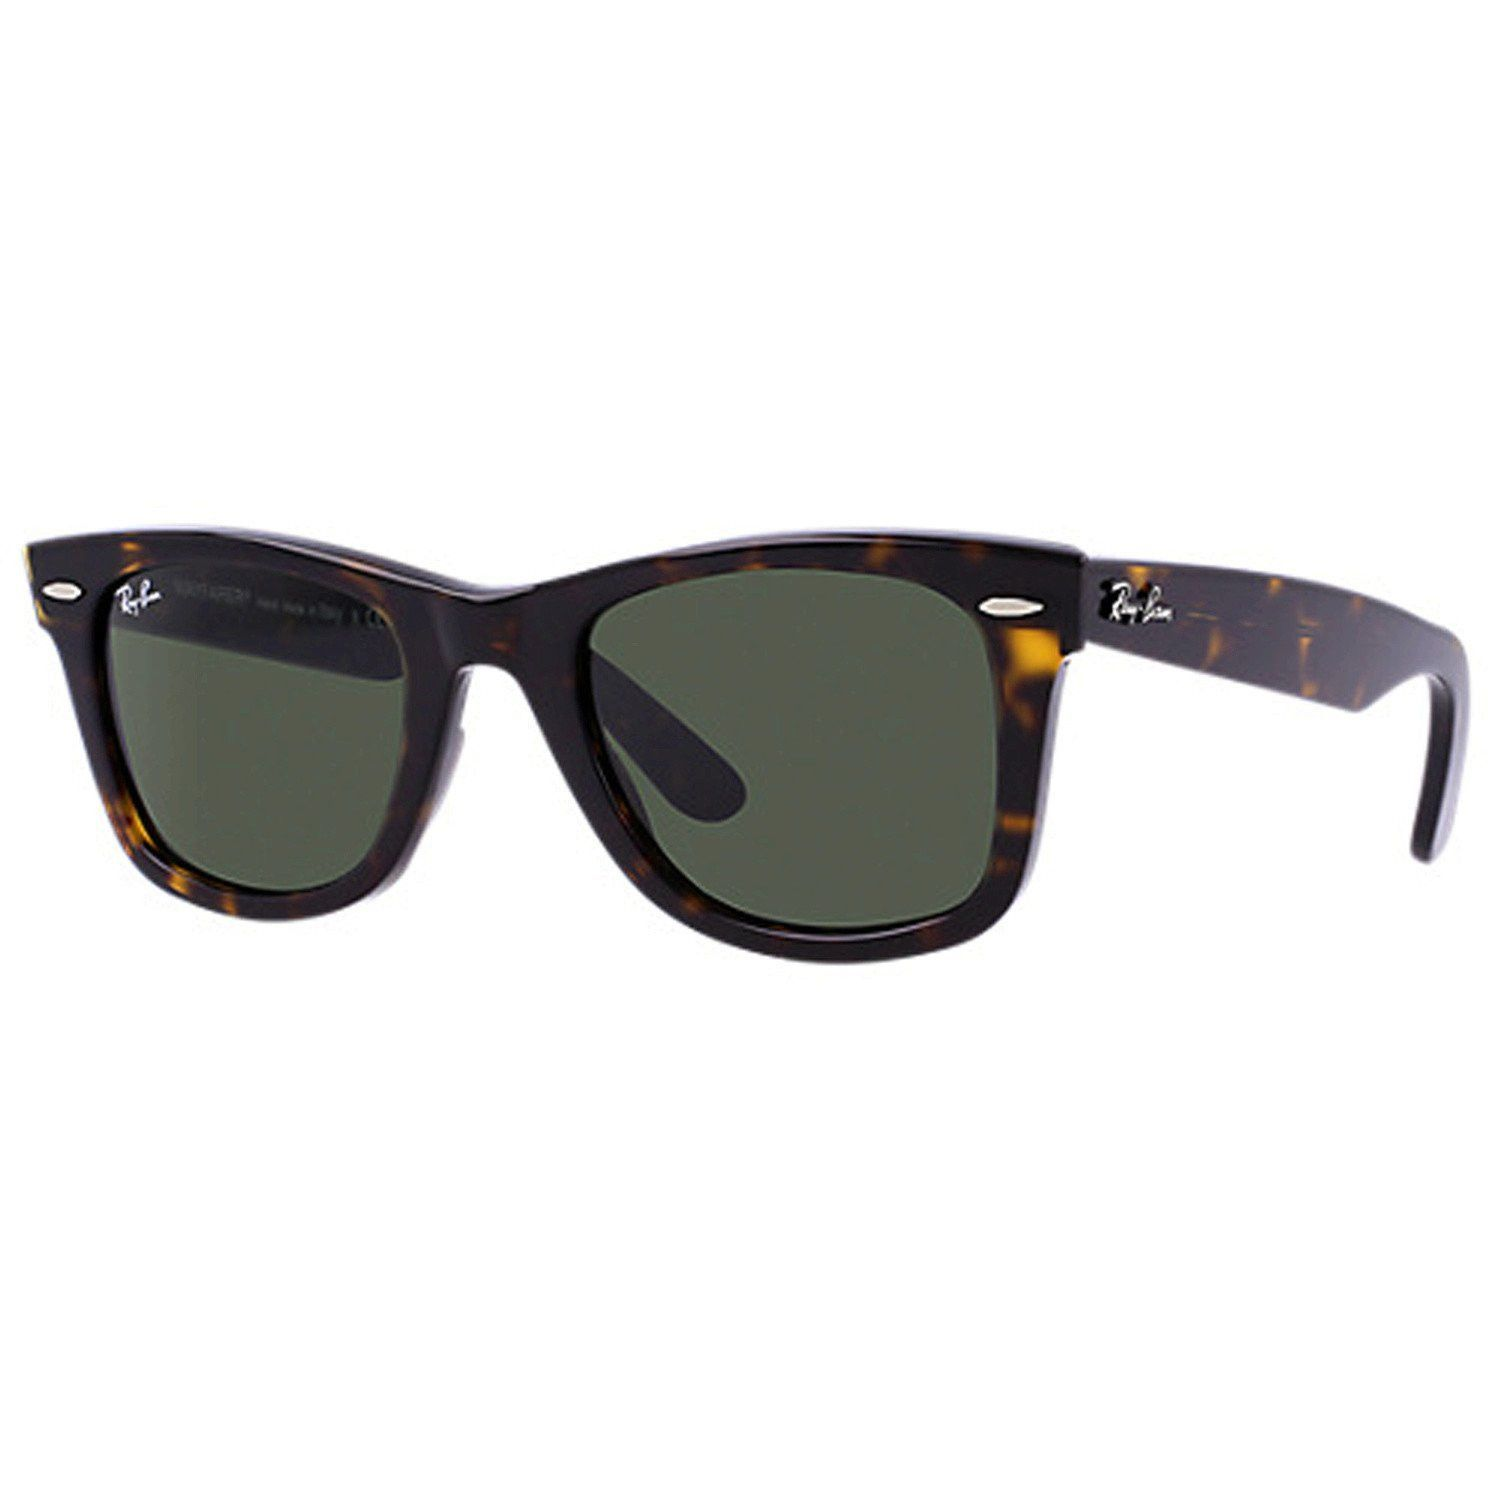 842ab23adc8 New Ray-Ban sunglasses have a small  RB  etched on the left lense ...